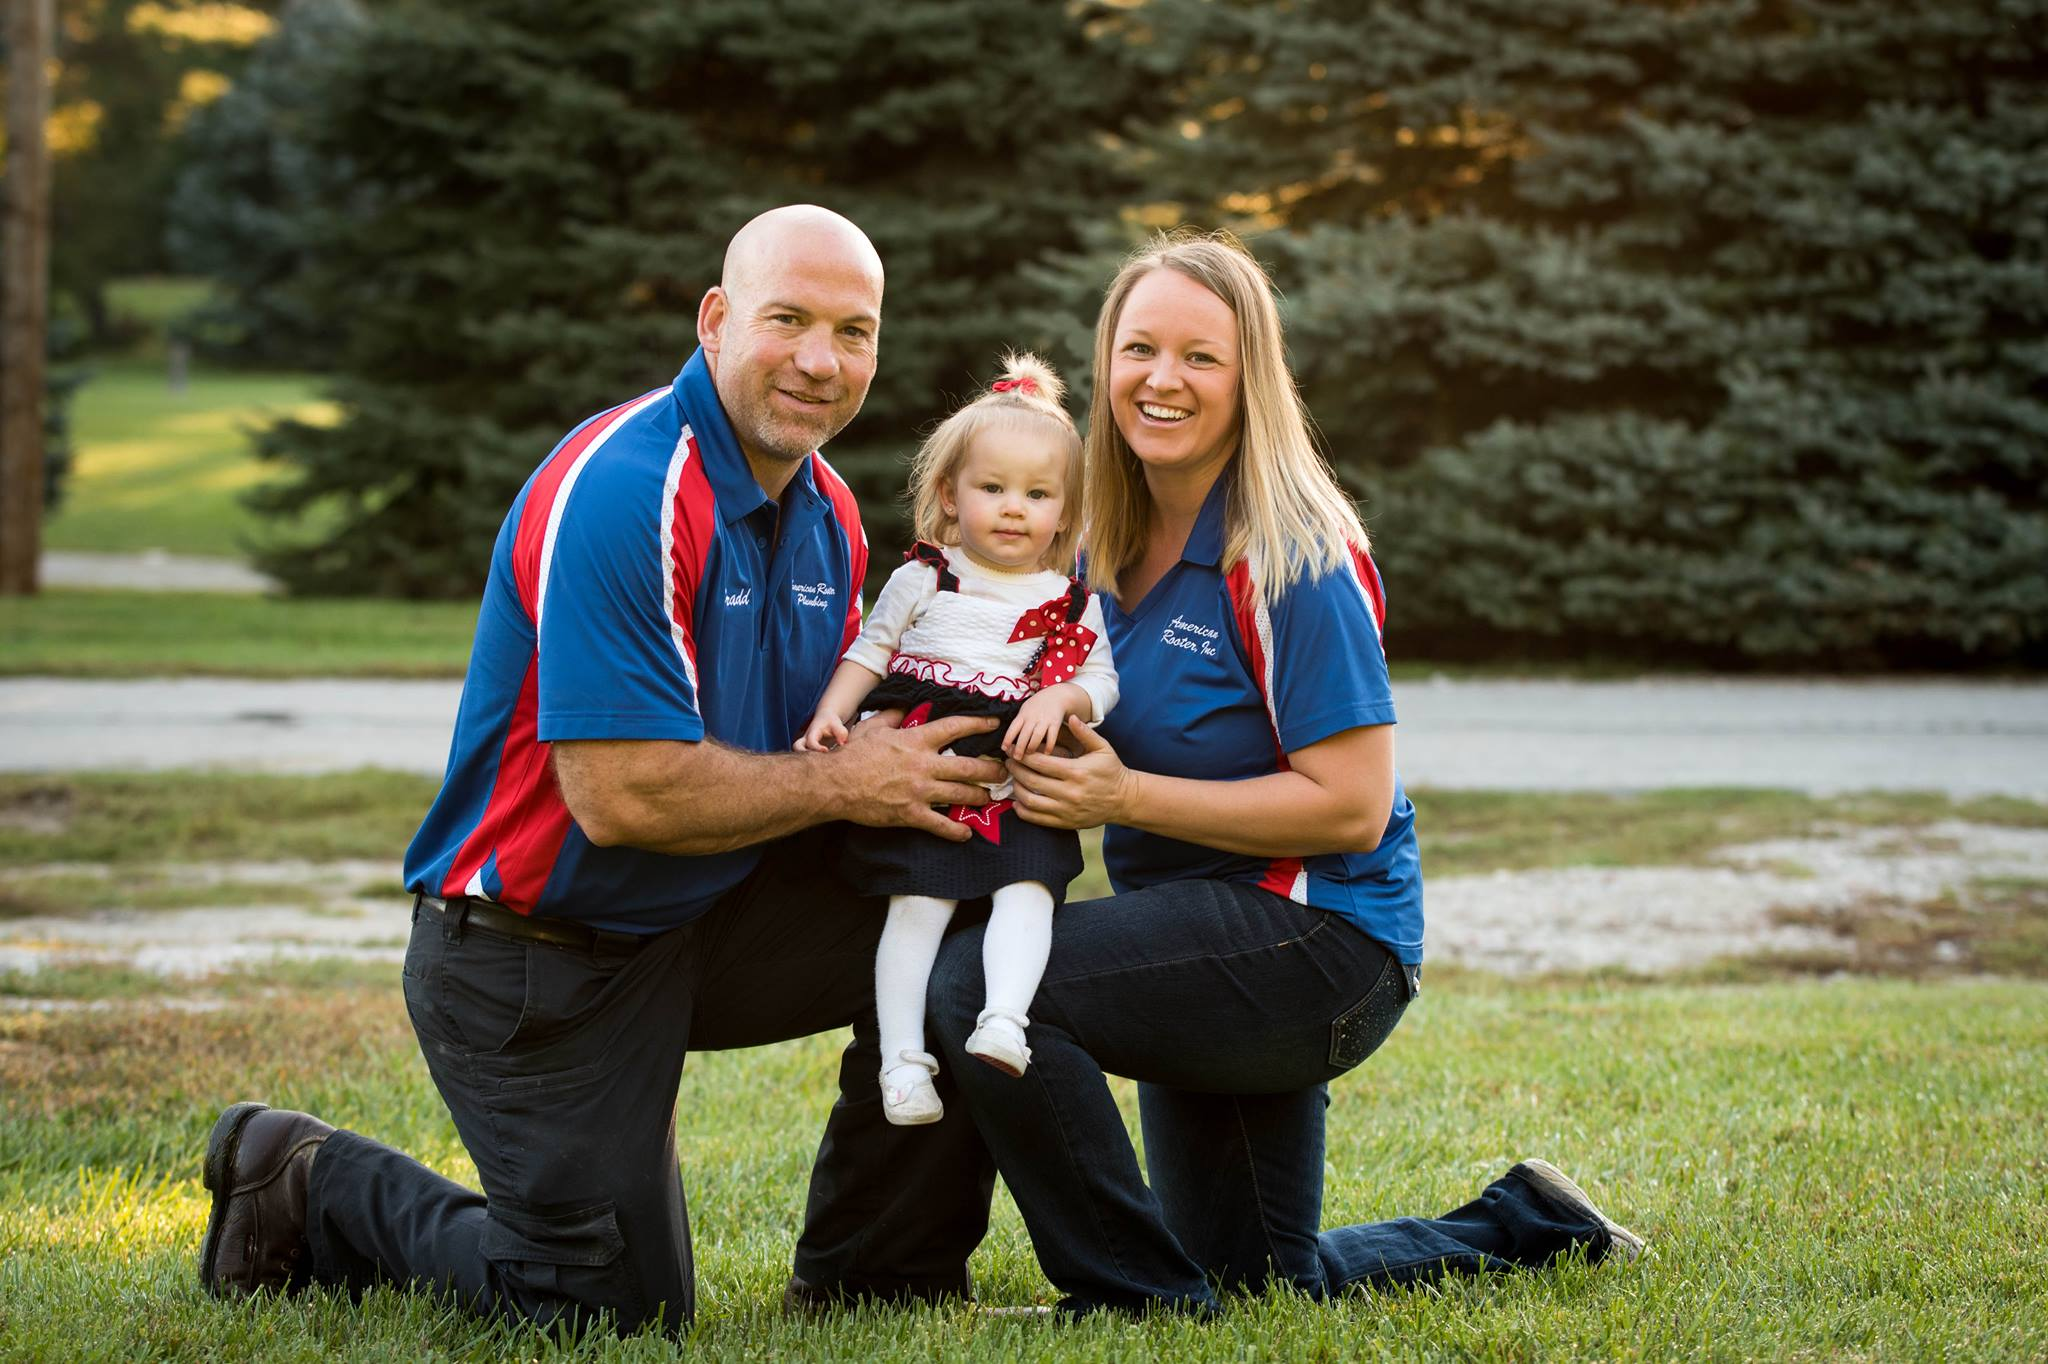 Nebraska's Top Rated Local® Plumbers Award Winner: American Rooter Plumbing